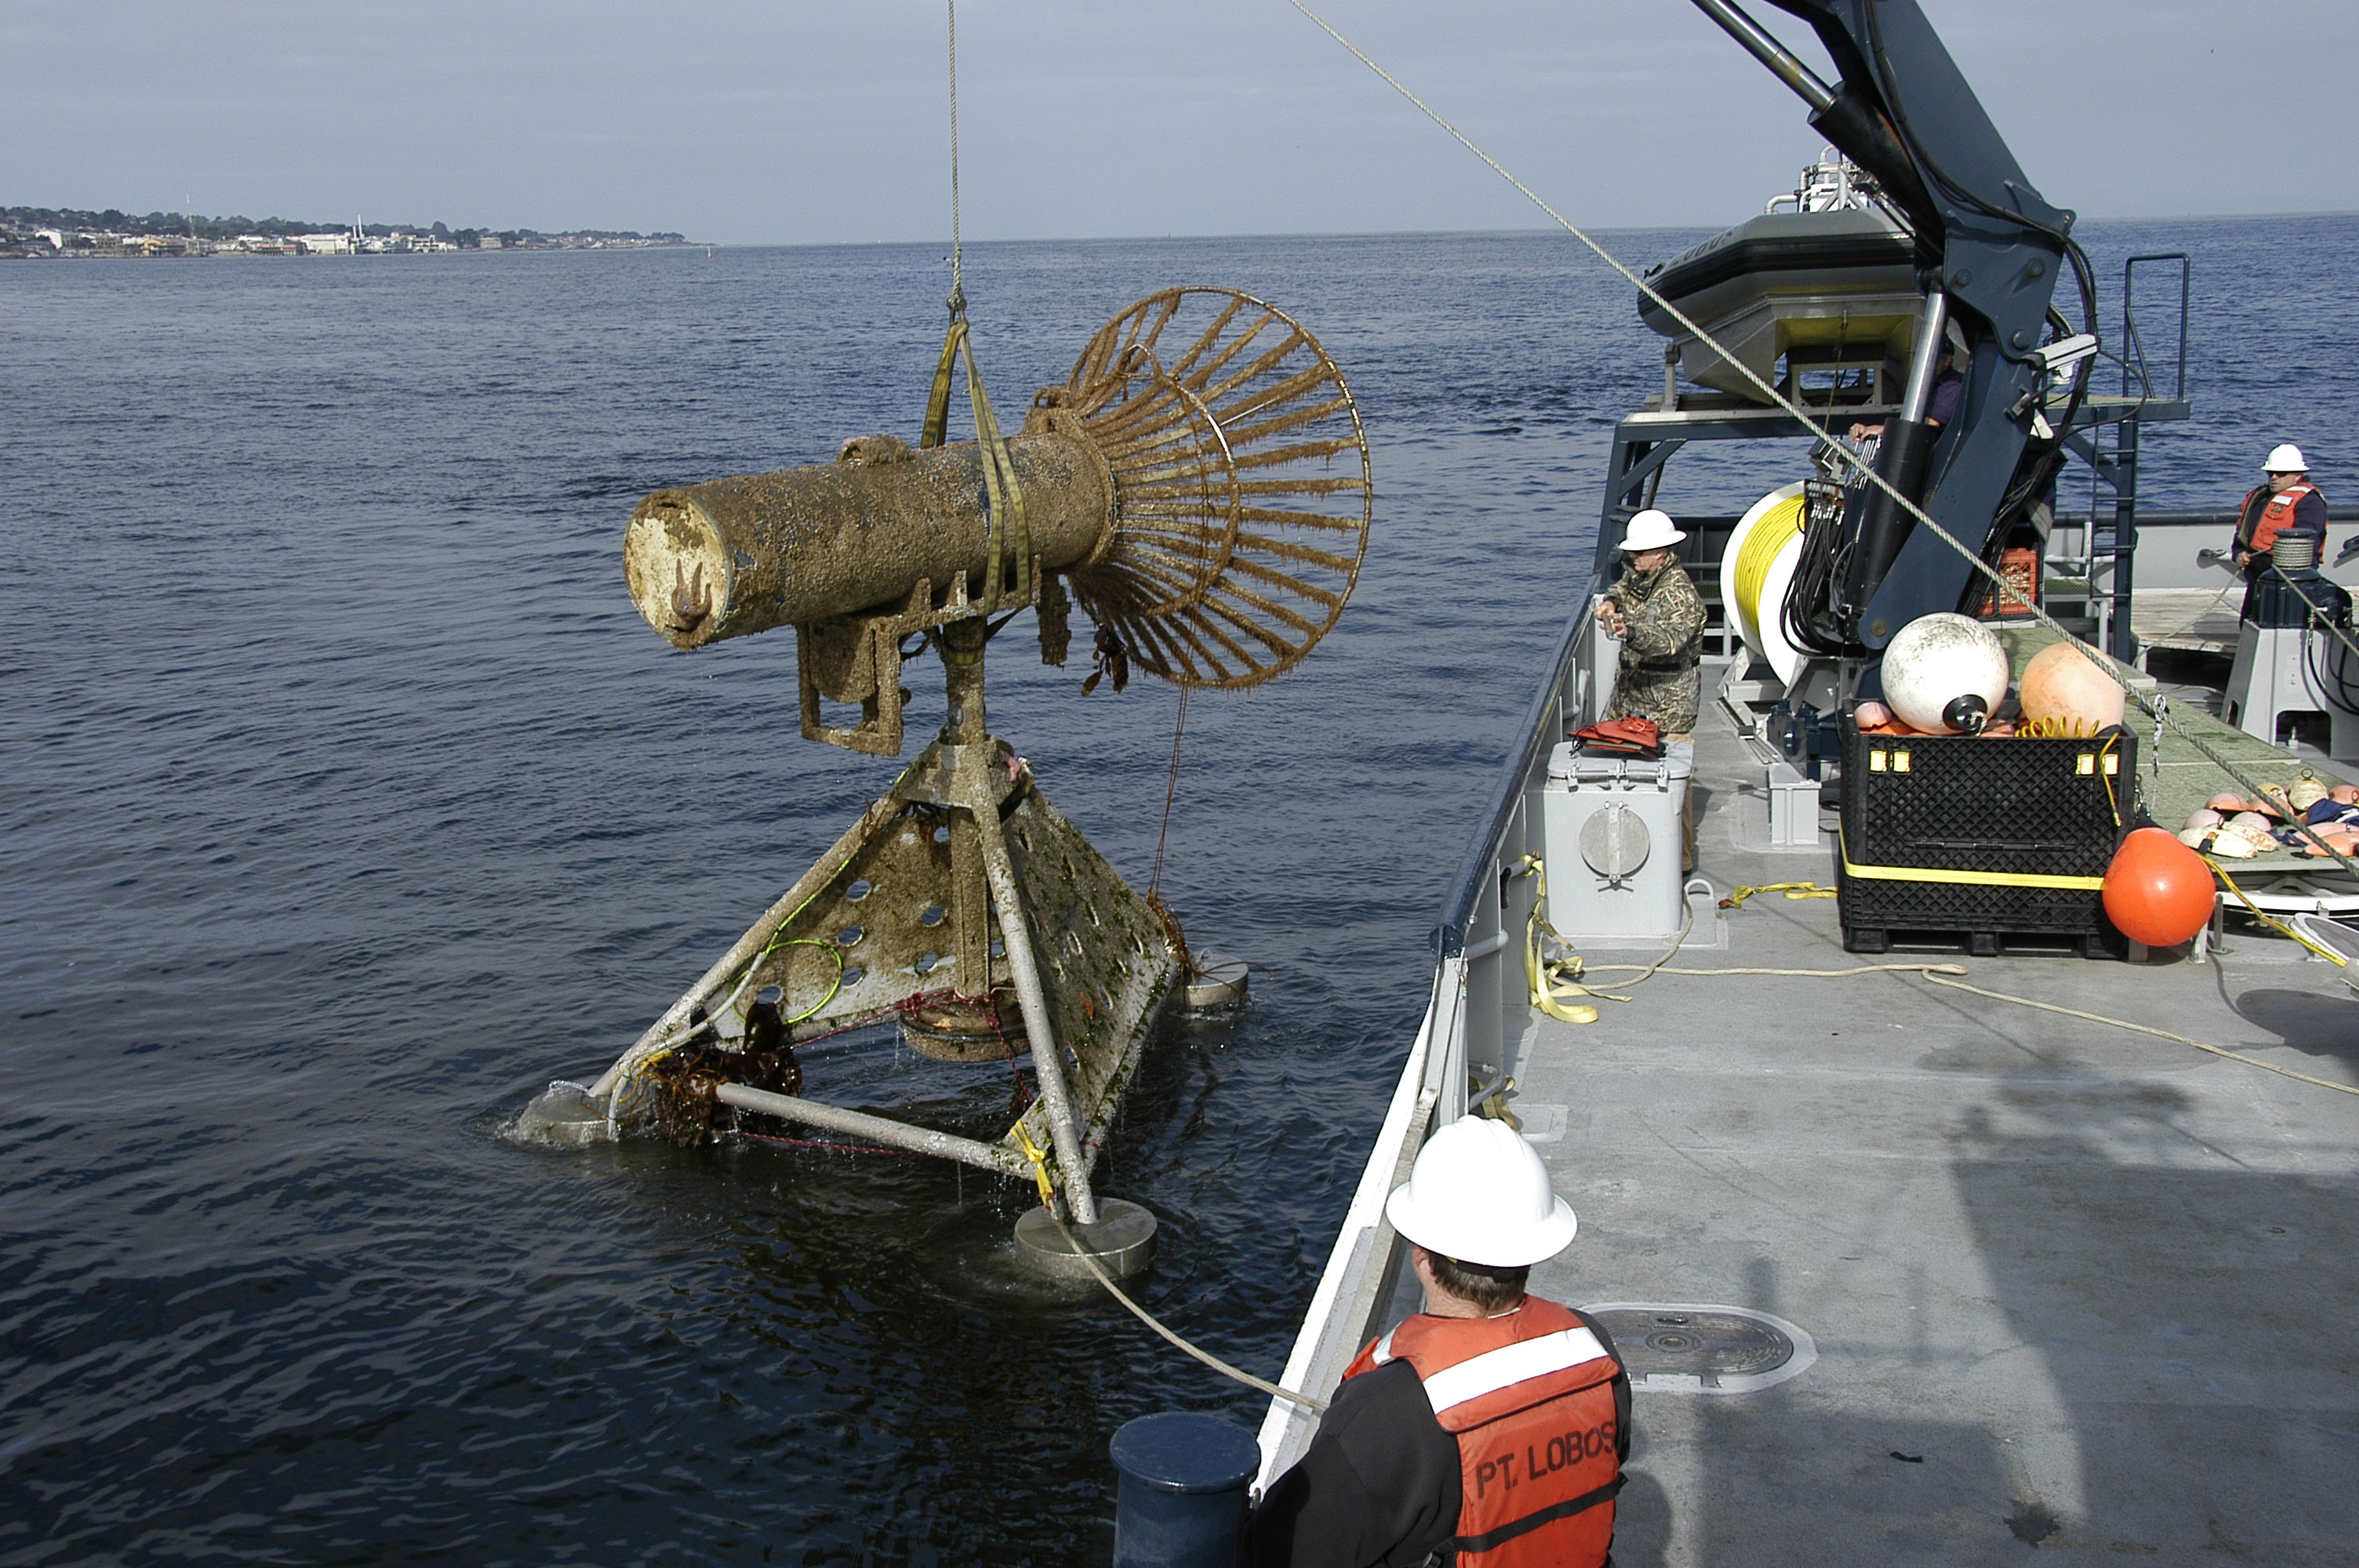 auv docking station recovery from deployment